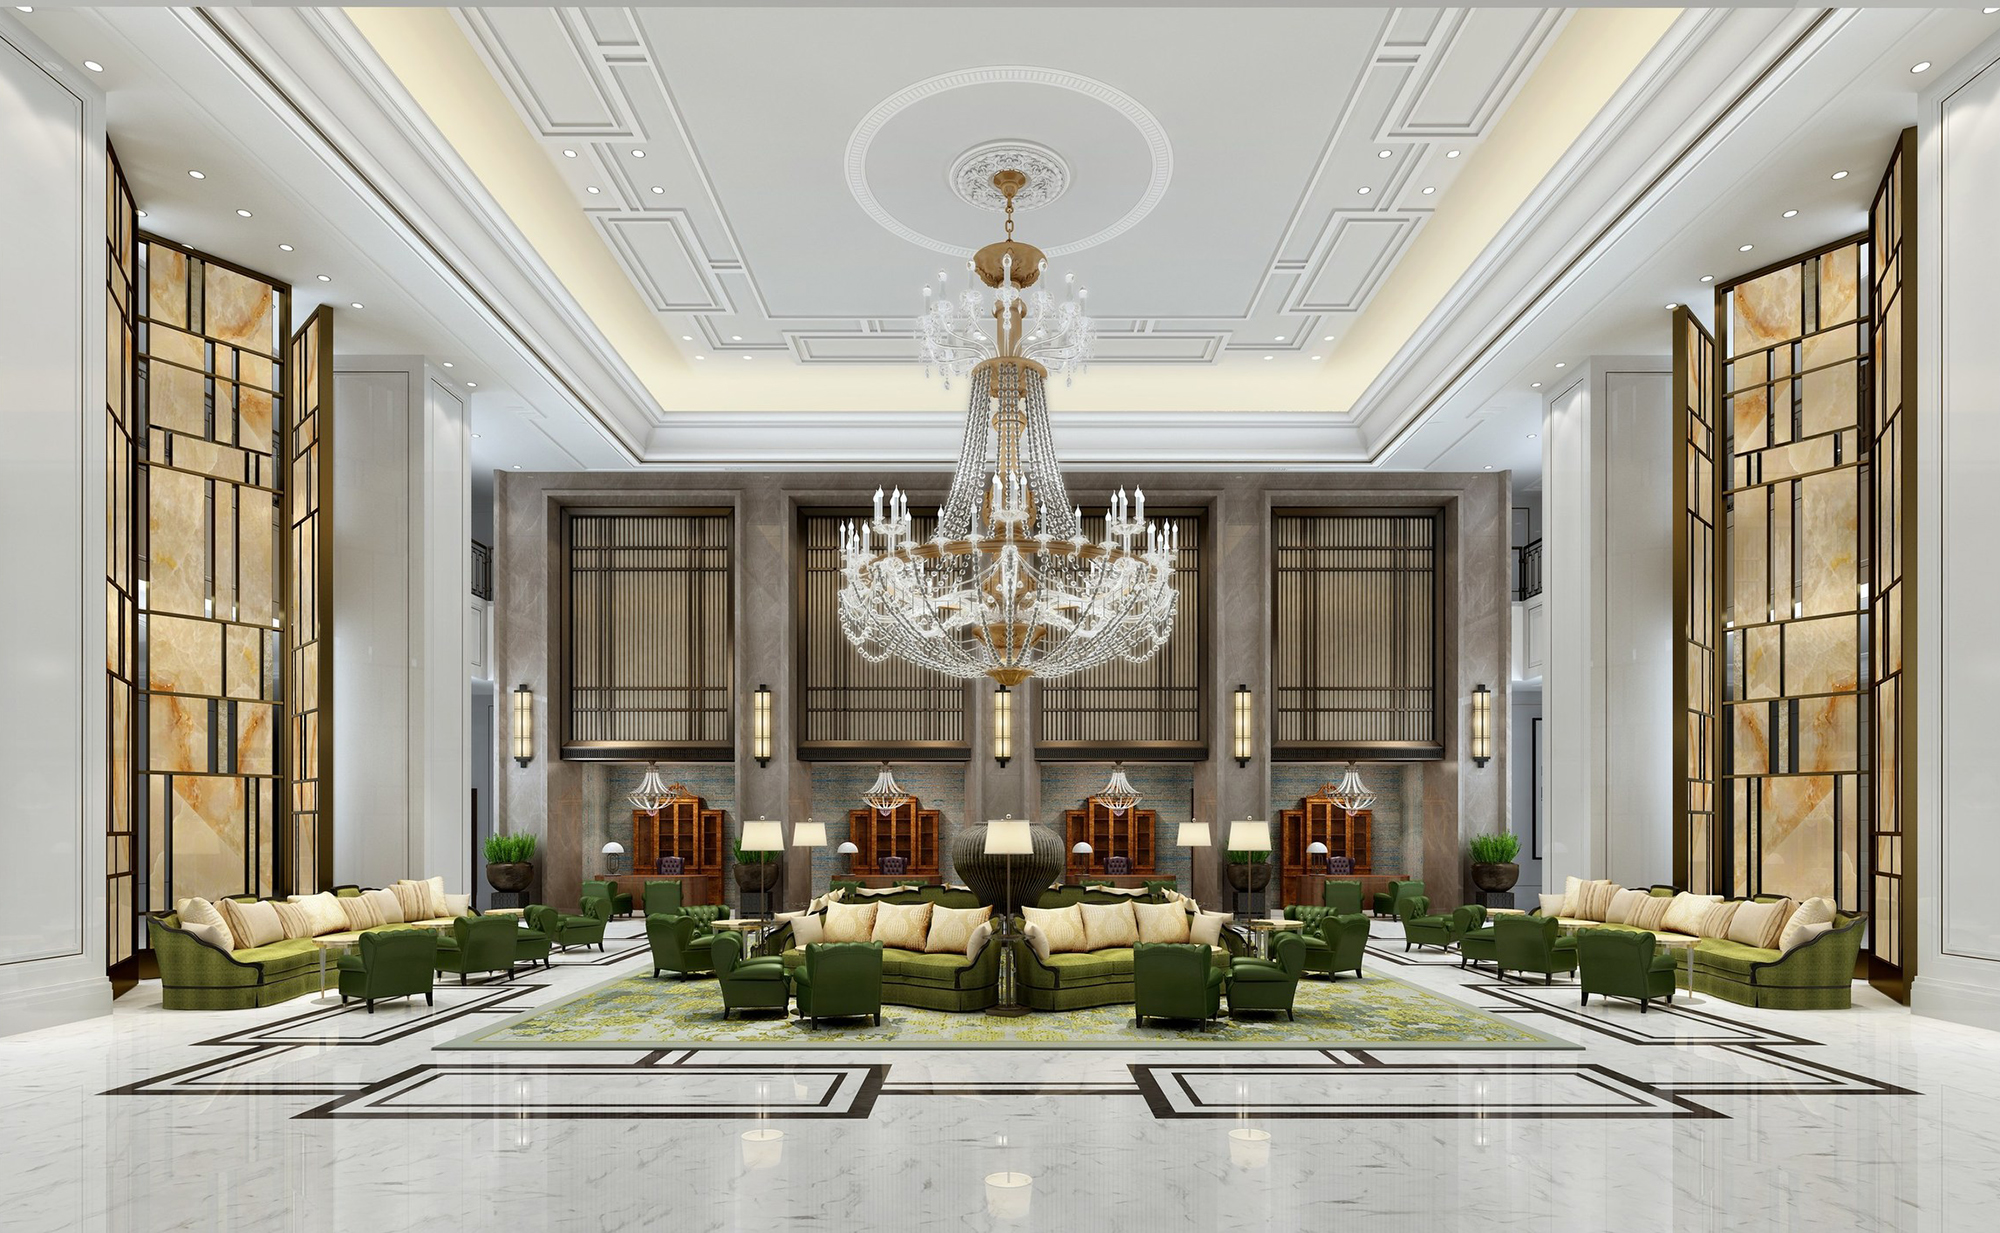 6 sumptuous new luxury hotels in Shanghai to check into this 2017